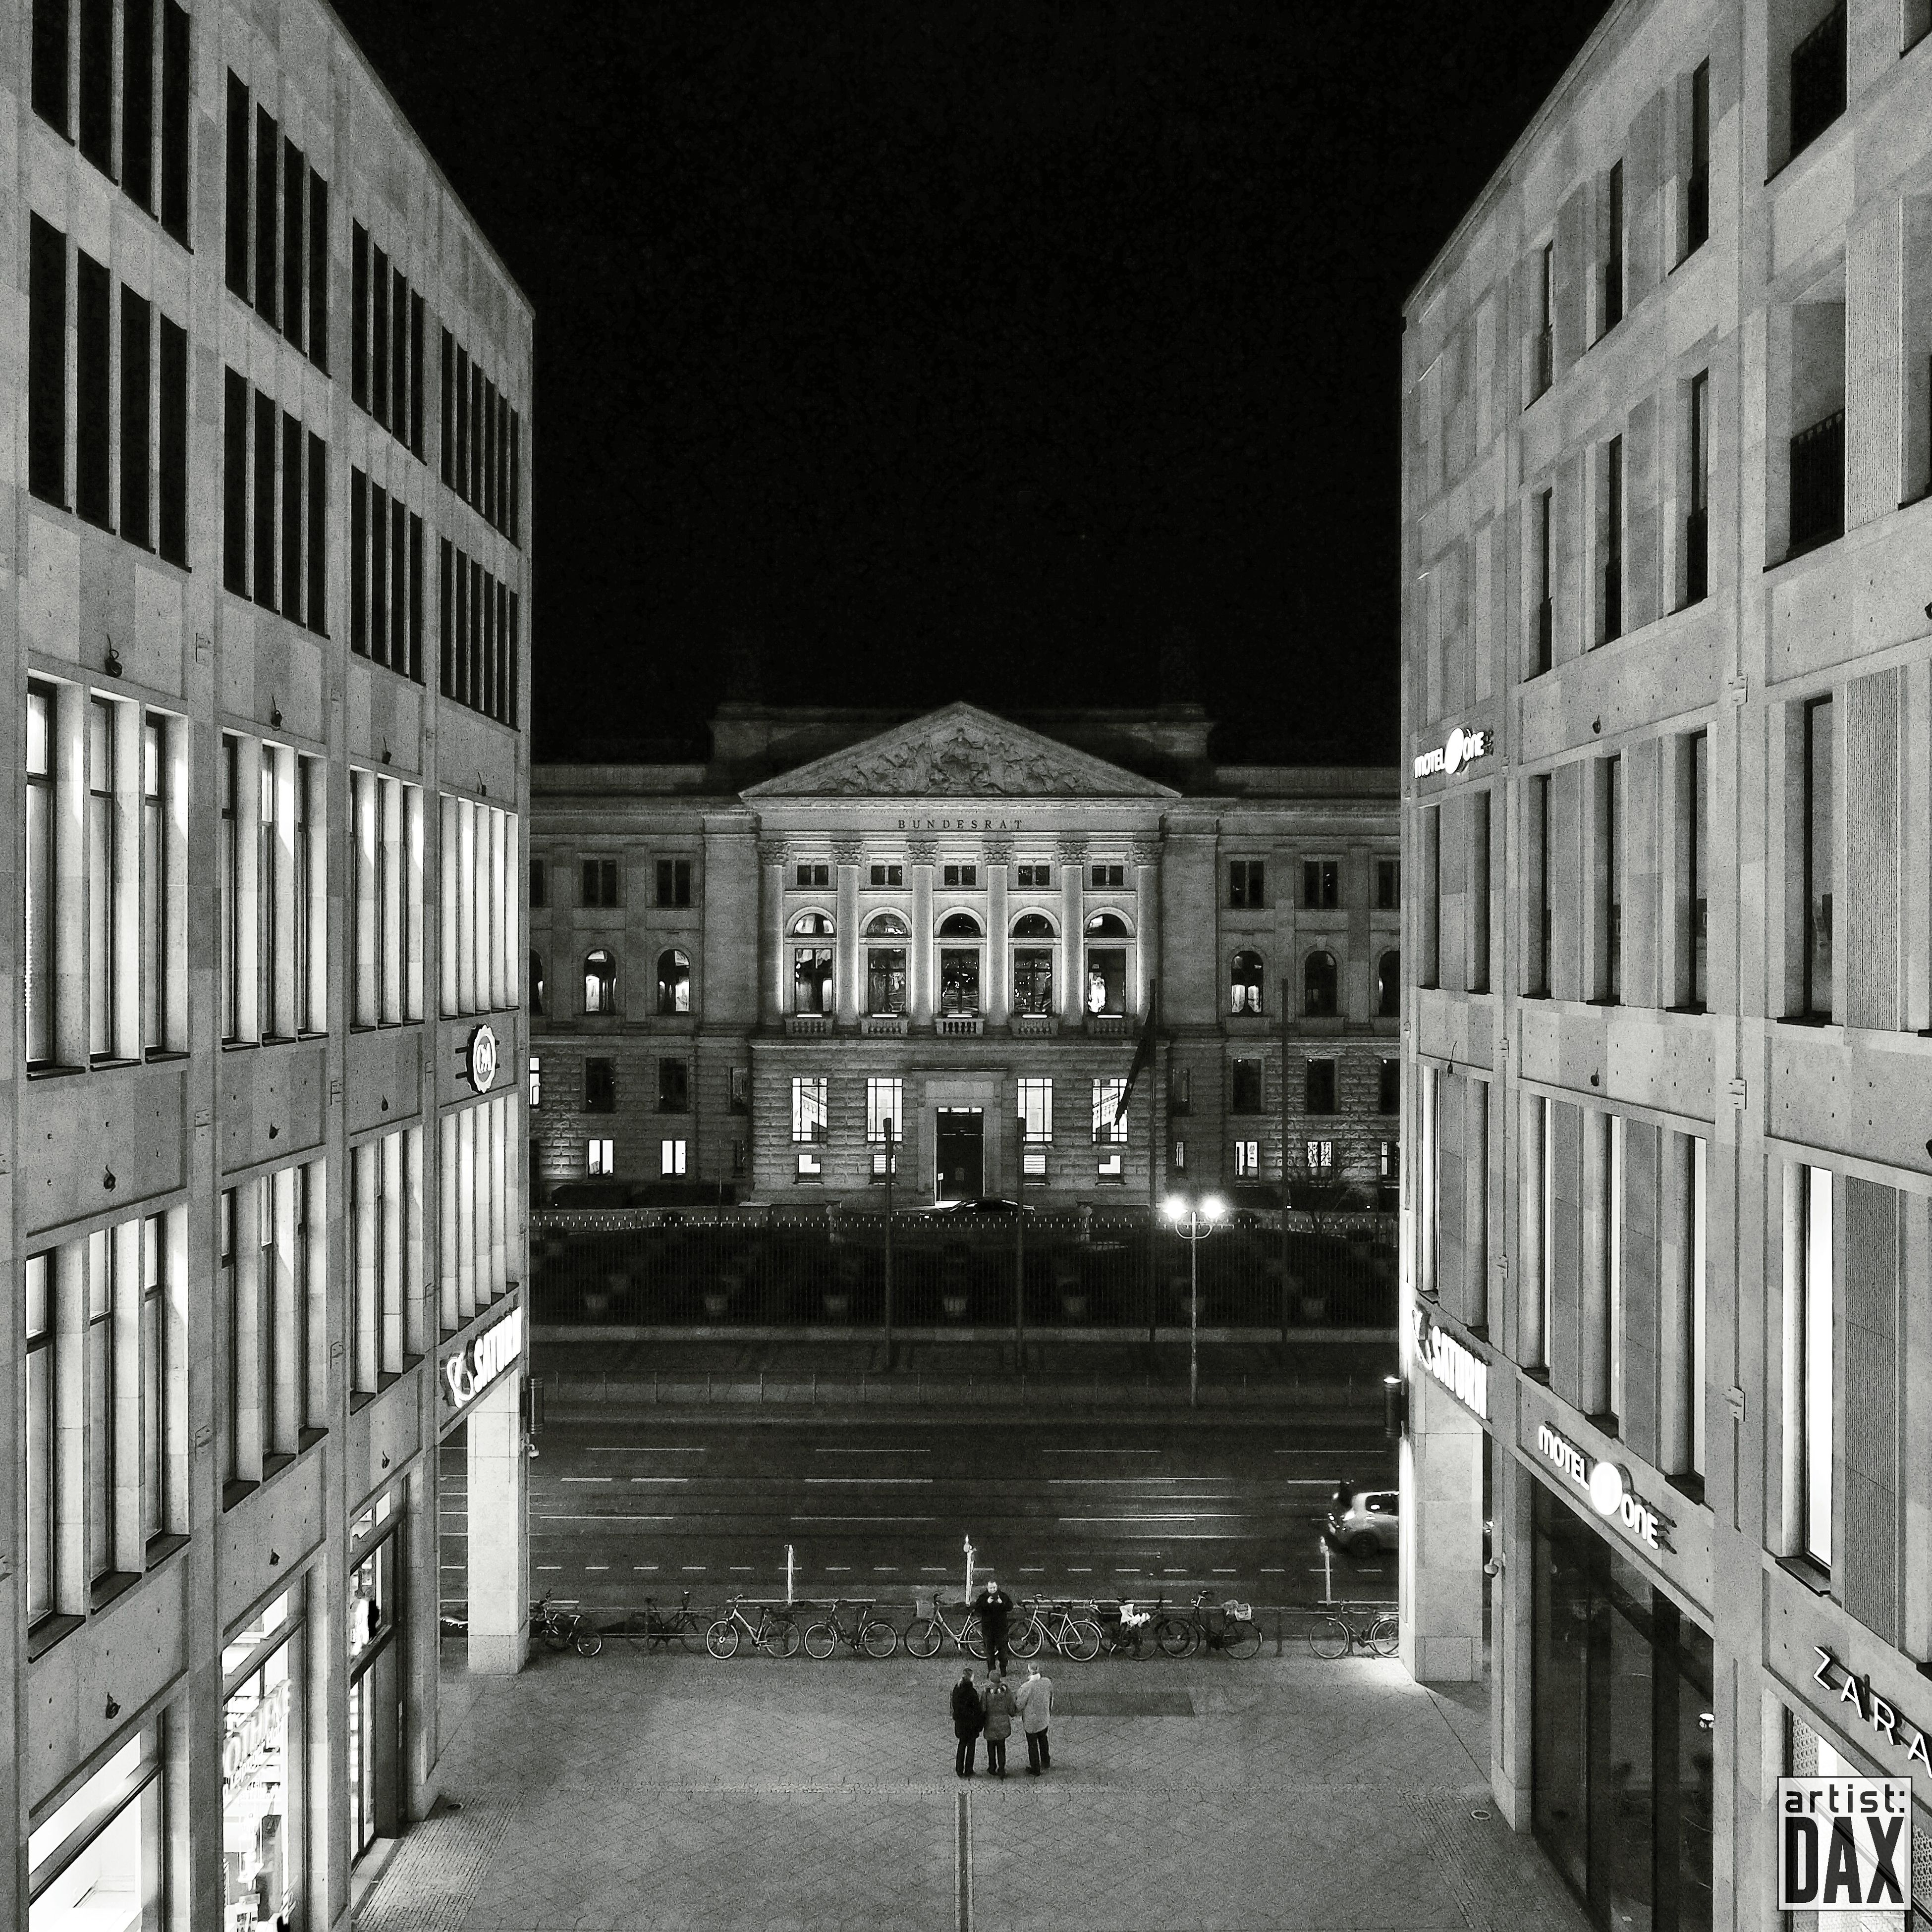 architecture, building exterior, built structure, men, lifestyles, person, walking, leisure activity, city, building, city life, full length, unrecognizable person, facade, residential building, residential structure, night